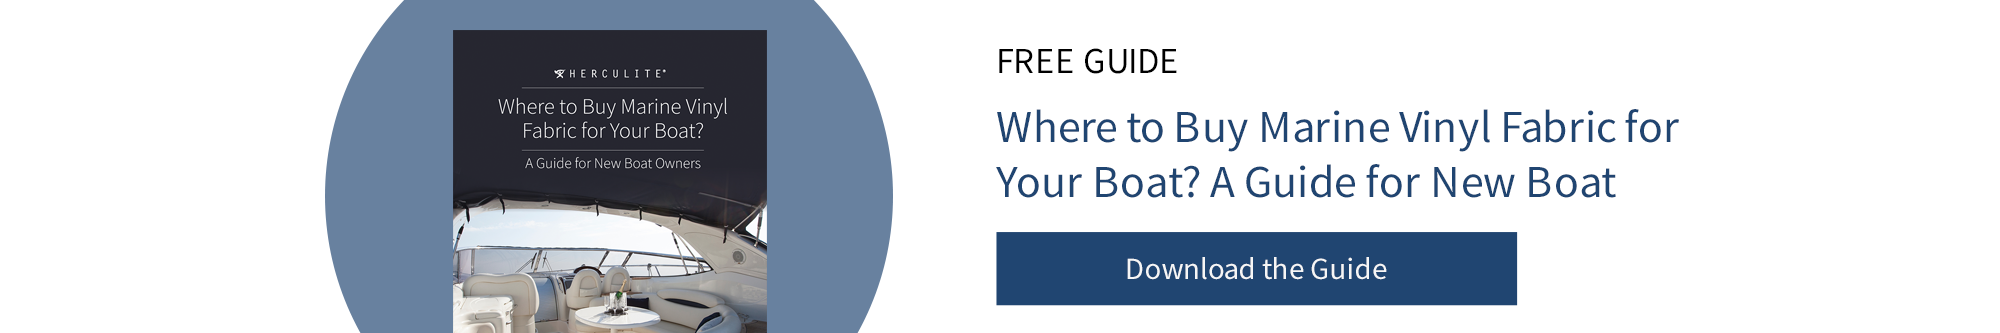 Where to Buy Marine Vinyl Fabric for Your Boat A Guide for New Boat Owners Herculite